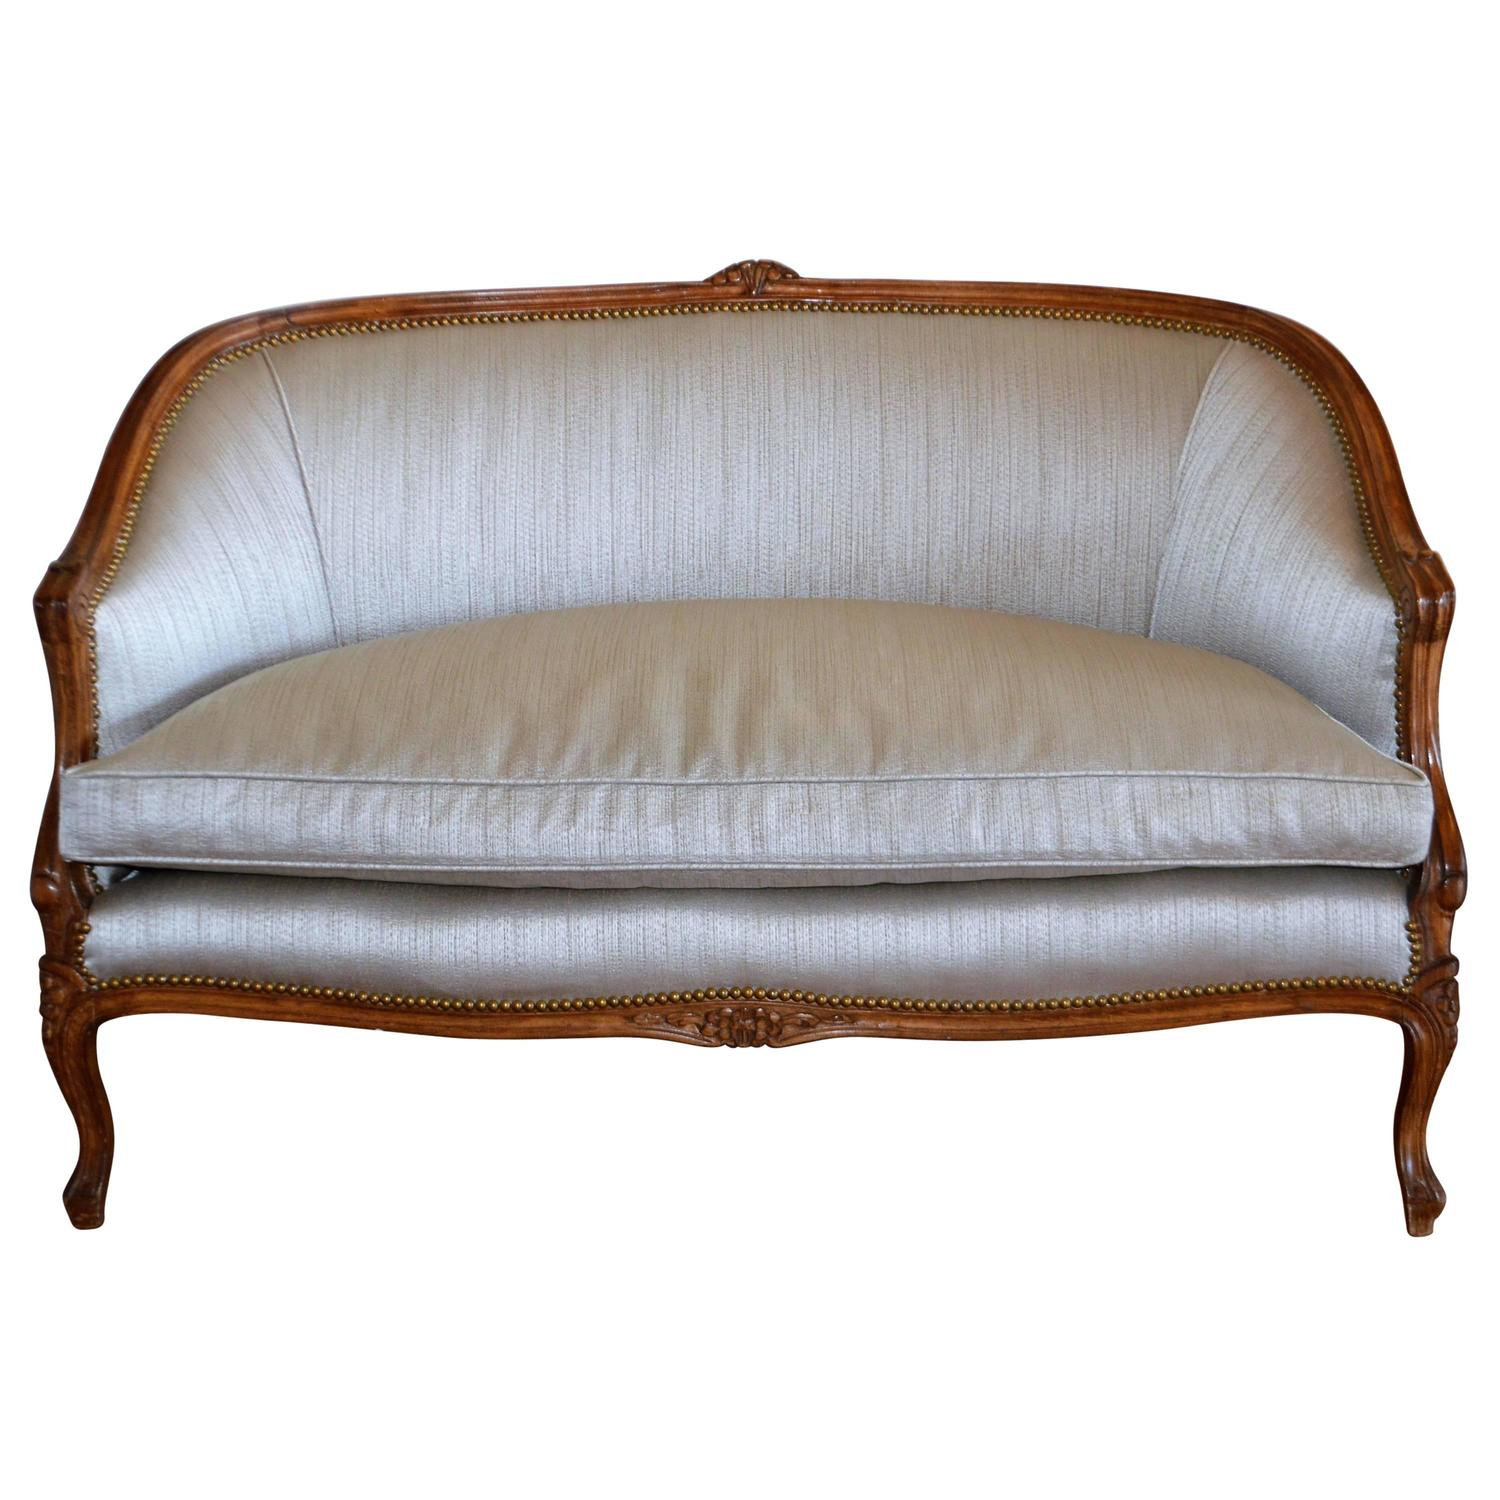 Louis xv style canape for sale at 1stdibs for Canape style louis xv